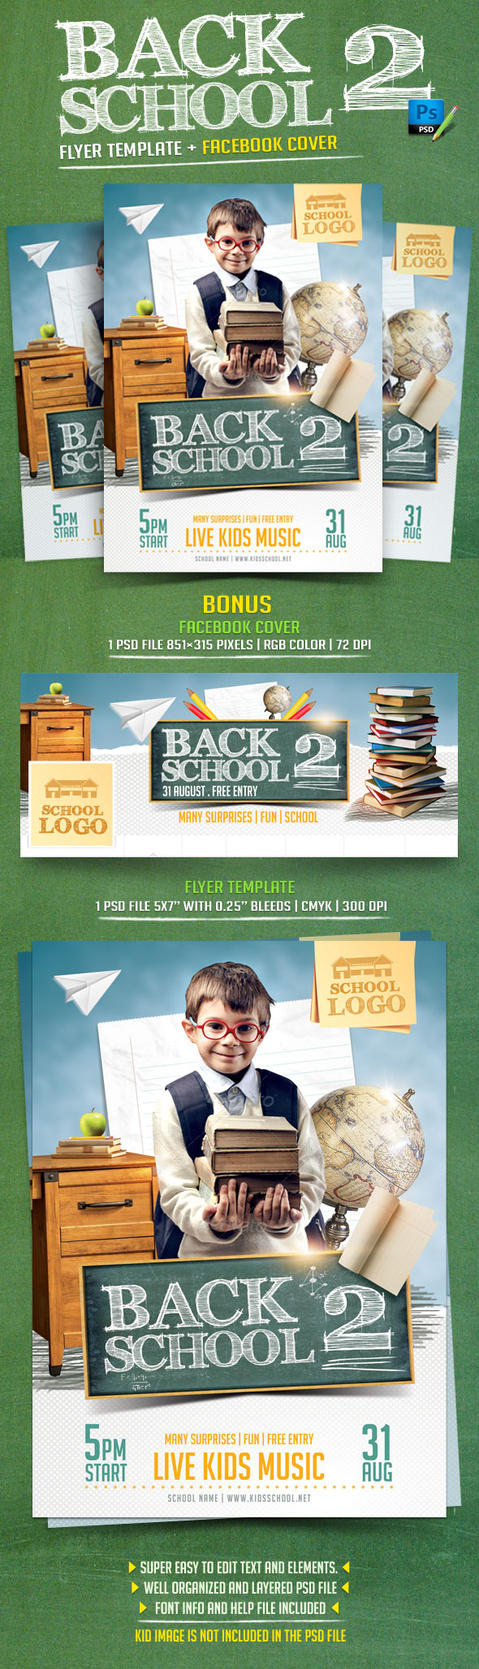 Back to School Flyer Template by BriellDesign